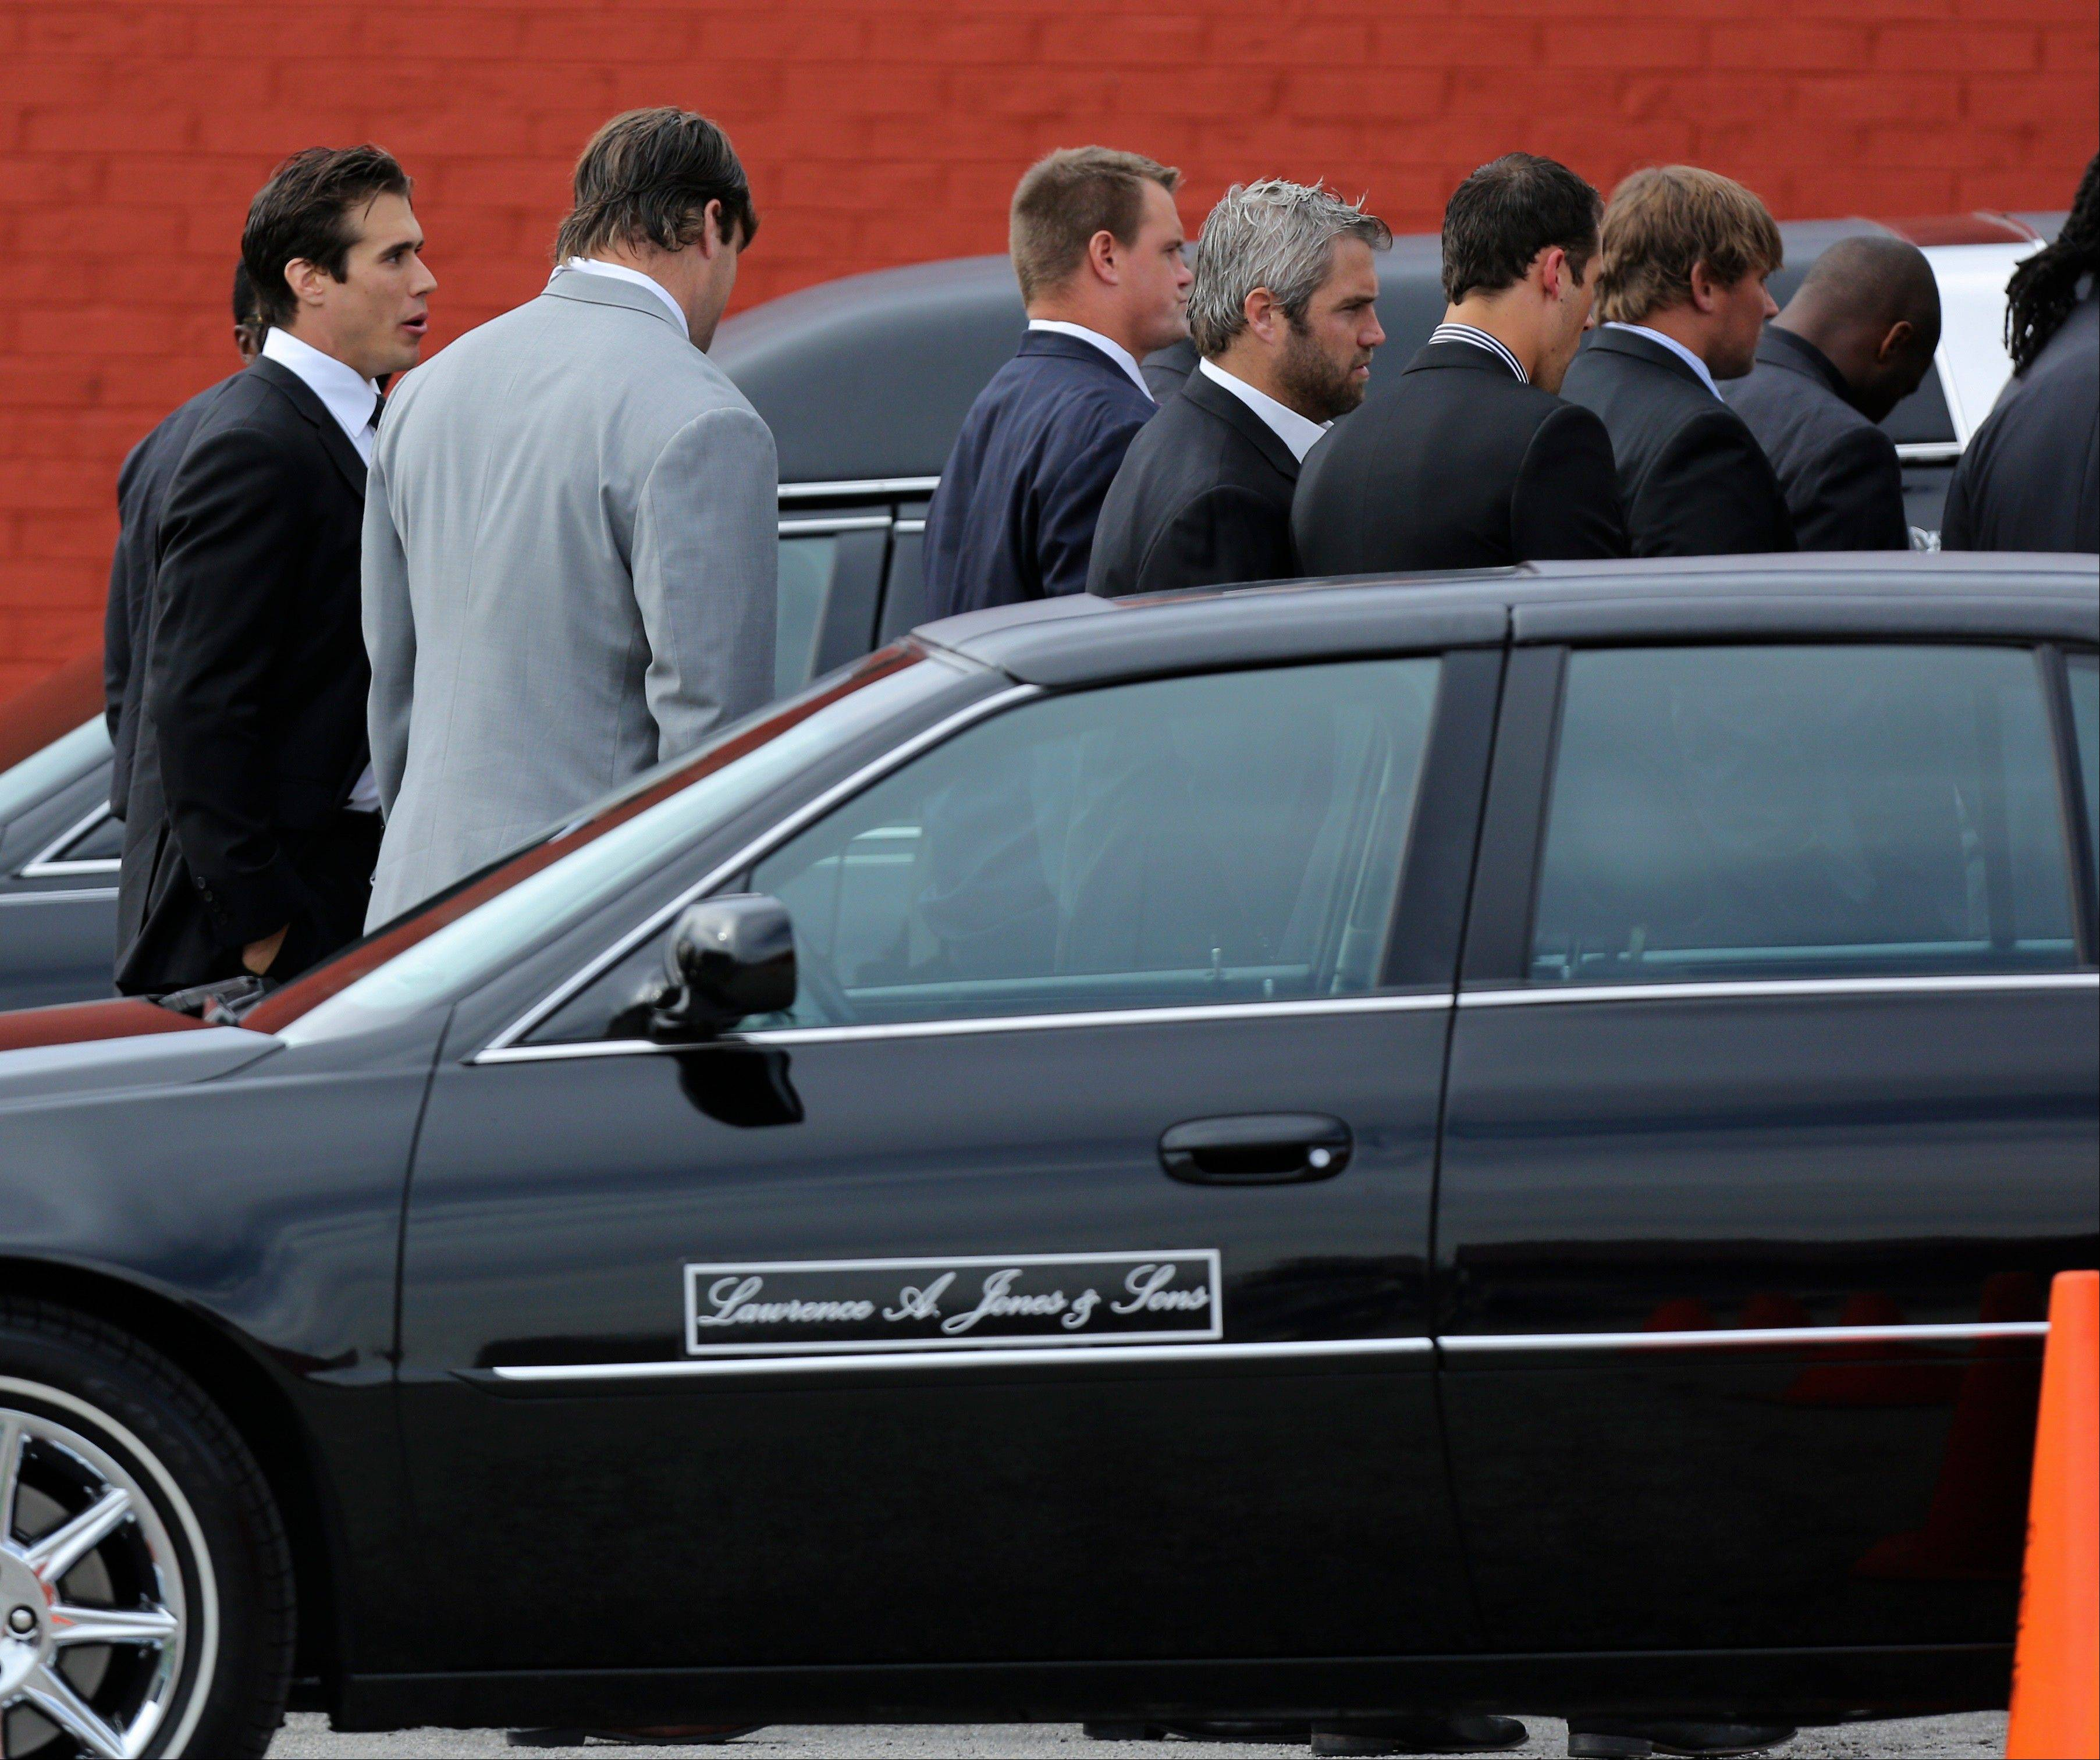 Kansas City Chiefs quarterback Brady Quinn, left, talks with a teammate Wednesday as they arrive at a memorial service for Kansas City Chiefs' Jovan Belcher at the Landmark International Deliverance and Worship Center in Kansas City, Mo. Belcher shot his girlfriend, Kasandra Perkins, at their home Saturday morning before driving to Arrowhead Stadium and turning the gun on himself.